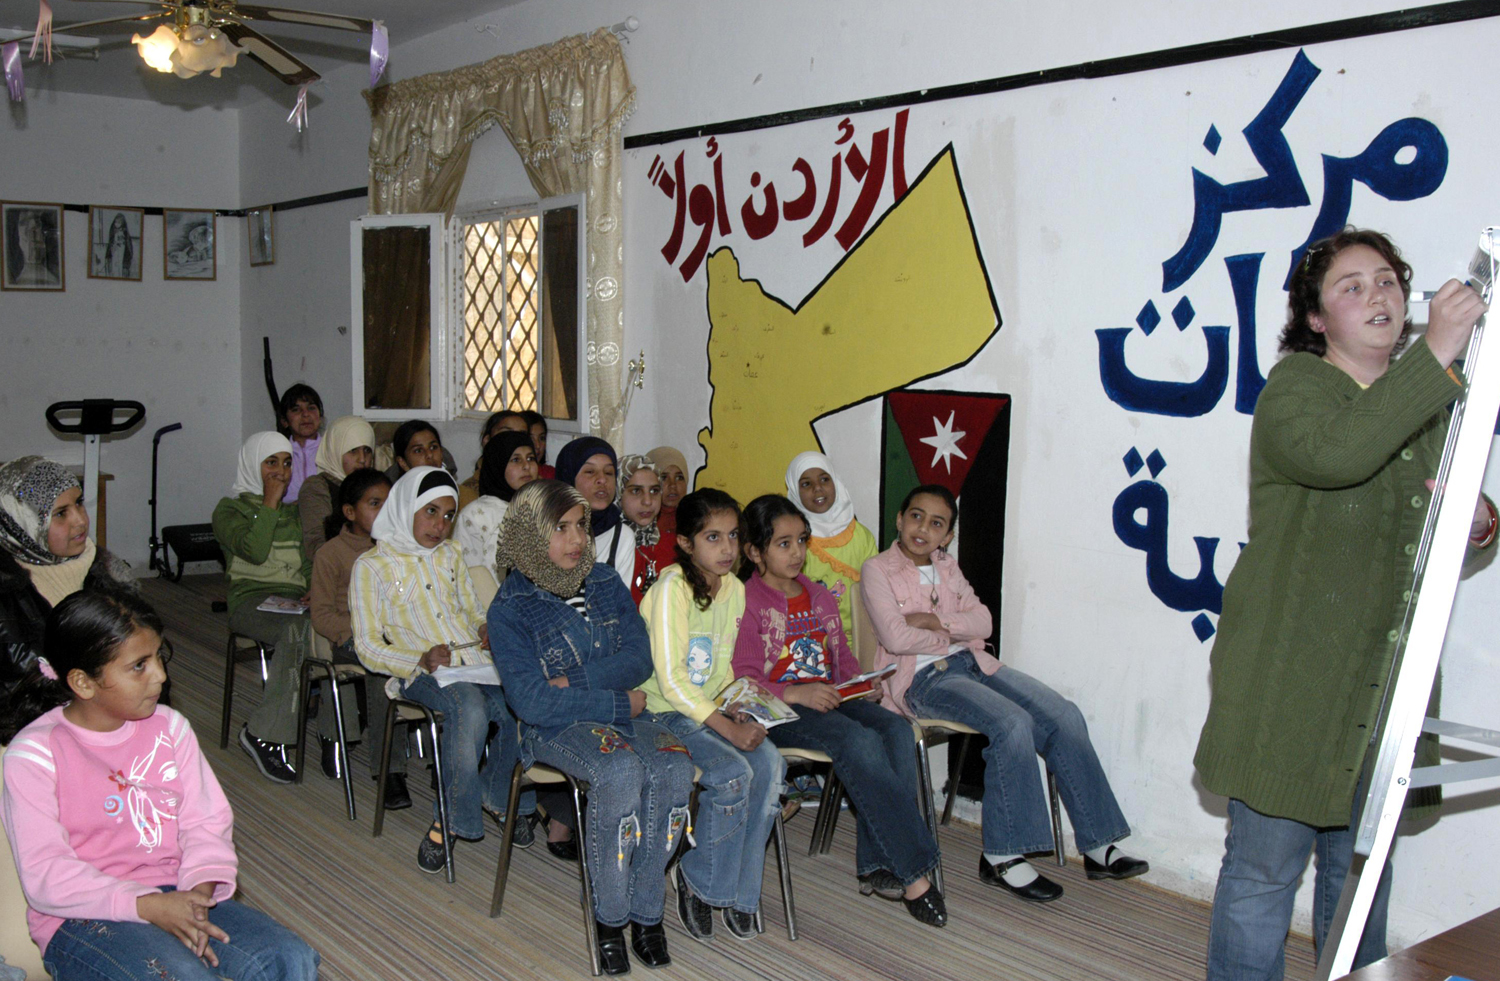 This Nov. 16, 2006 photo provided by the Peace Corps, shows Andrea Girard from Coulterville, CA., teaching English at an all girls school in Jordan.